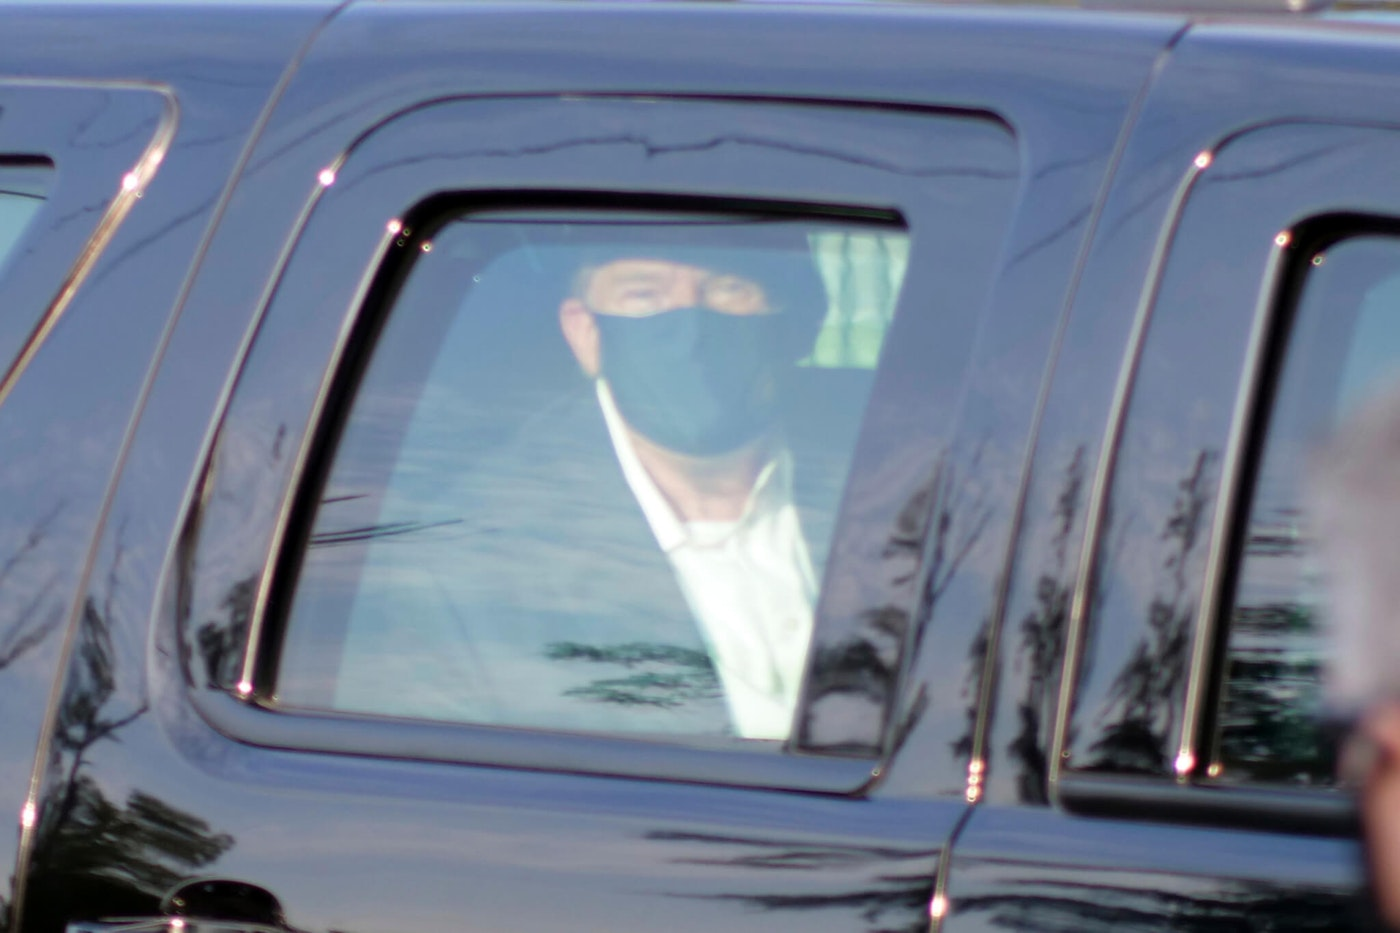 Contrary to the CDC's recommendations, President Trump left Walter Reed Medical Center over the weekend in a car full of Secret Service officers to wave to his supporters (AP Photo/Anthony Peltier).